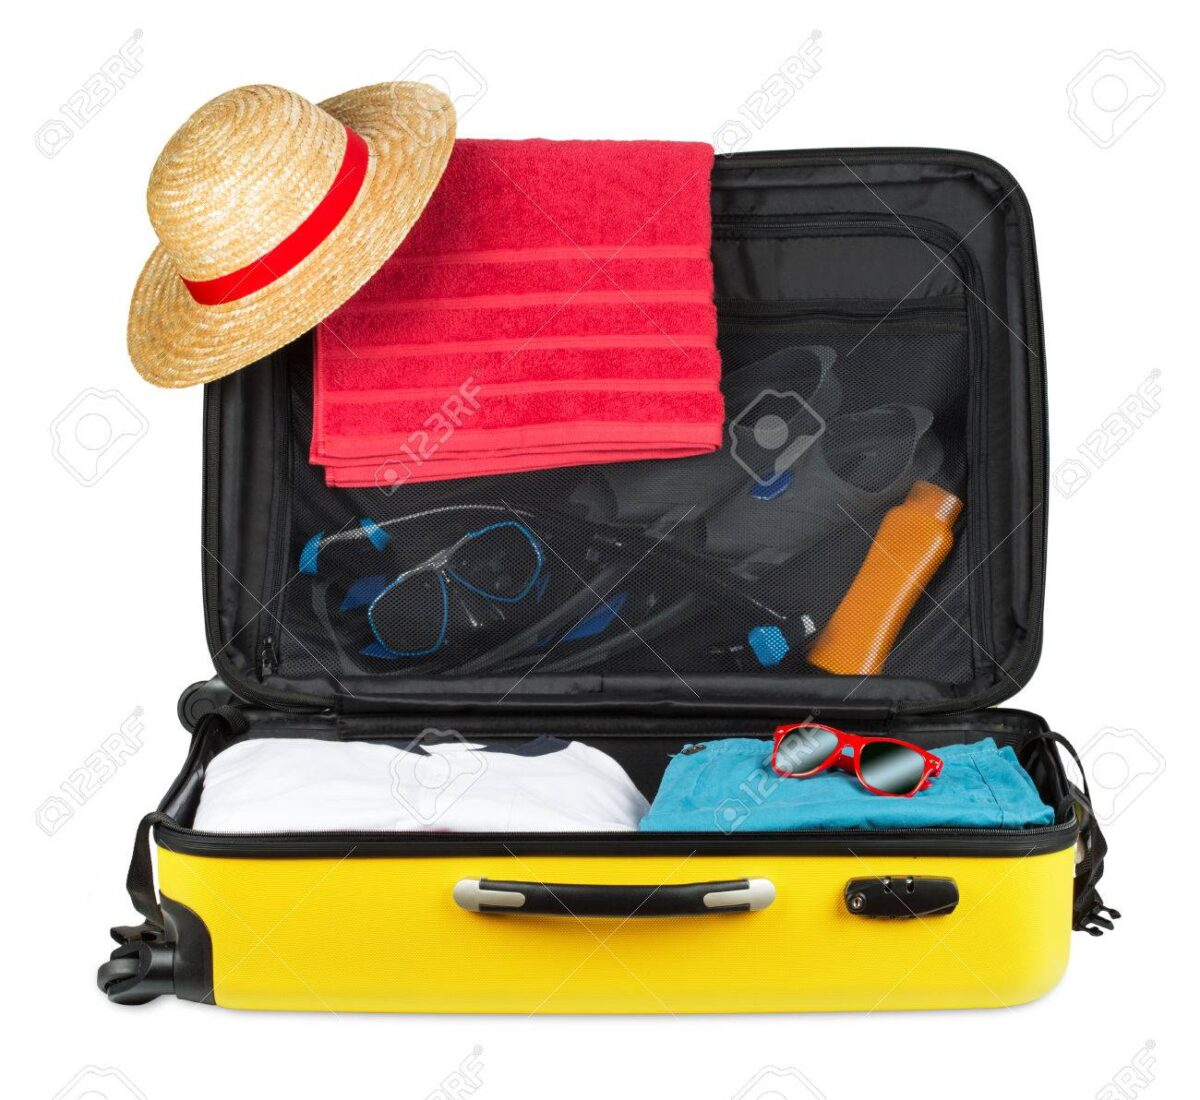 Top Things To Pack For a Cruise